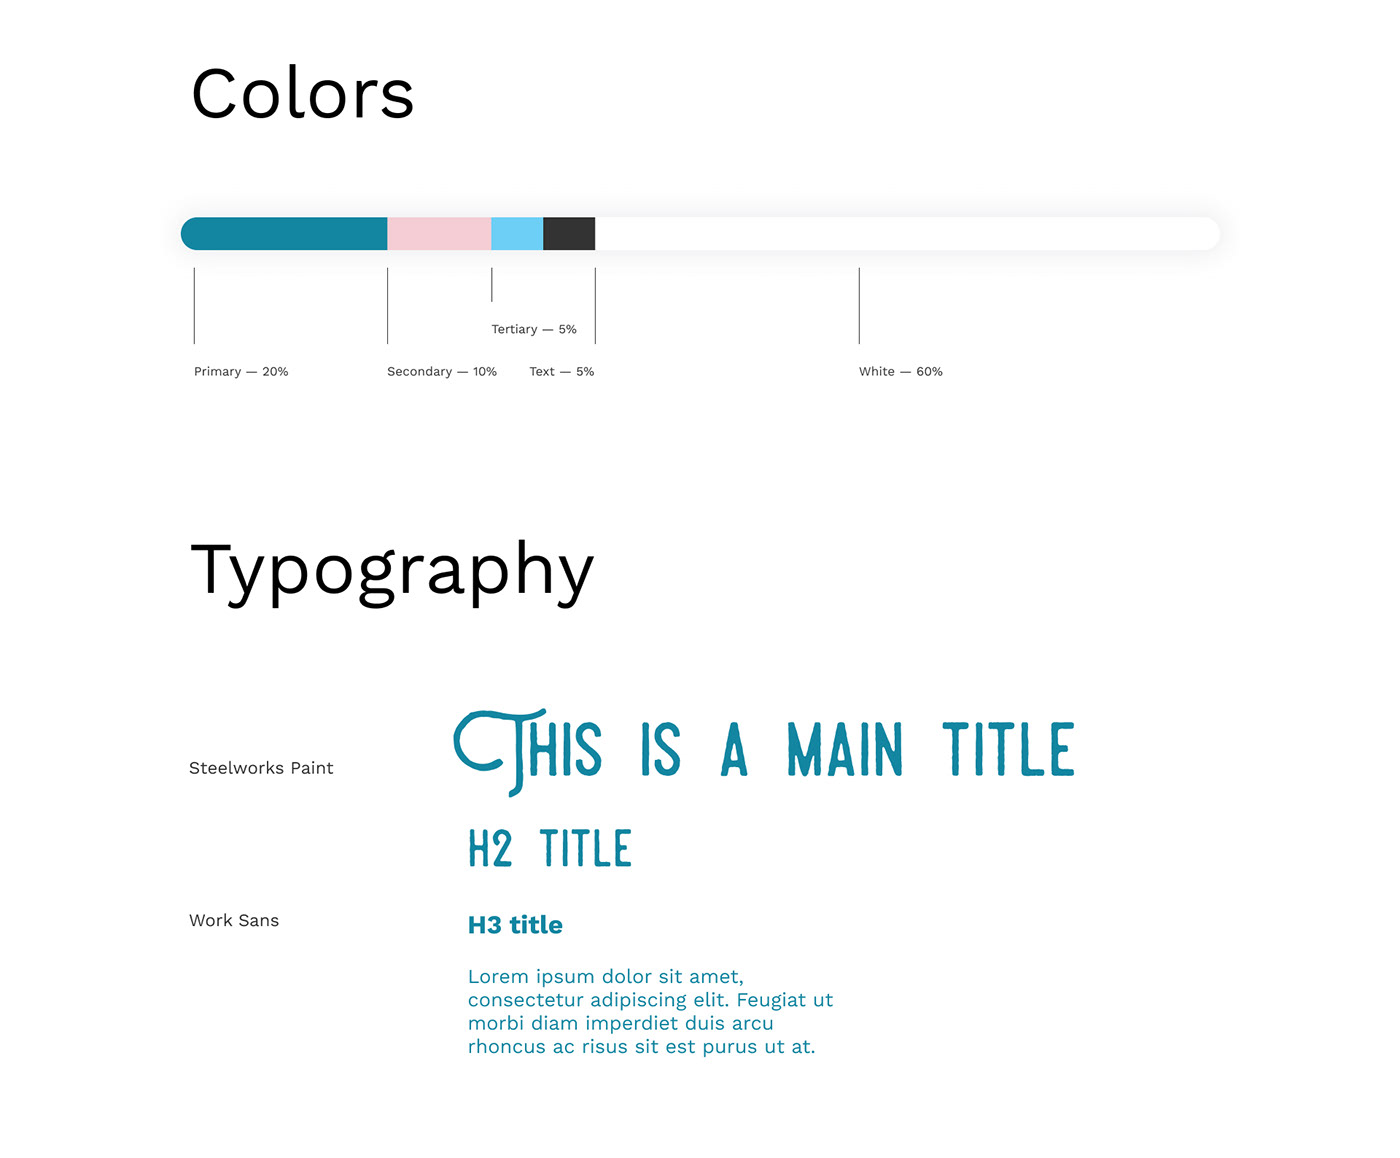 Colors and typefaces used across the project